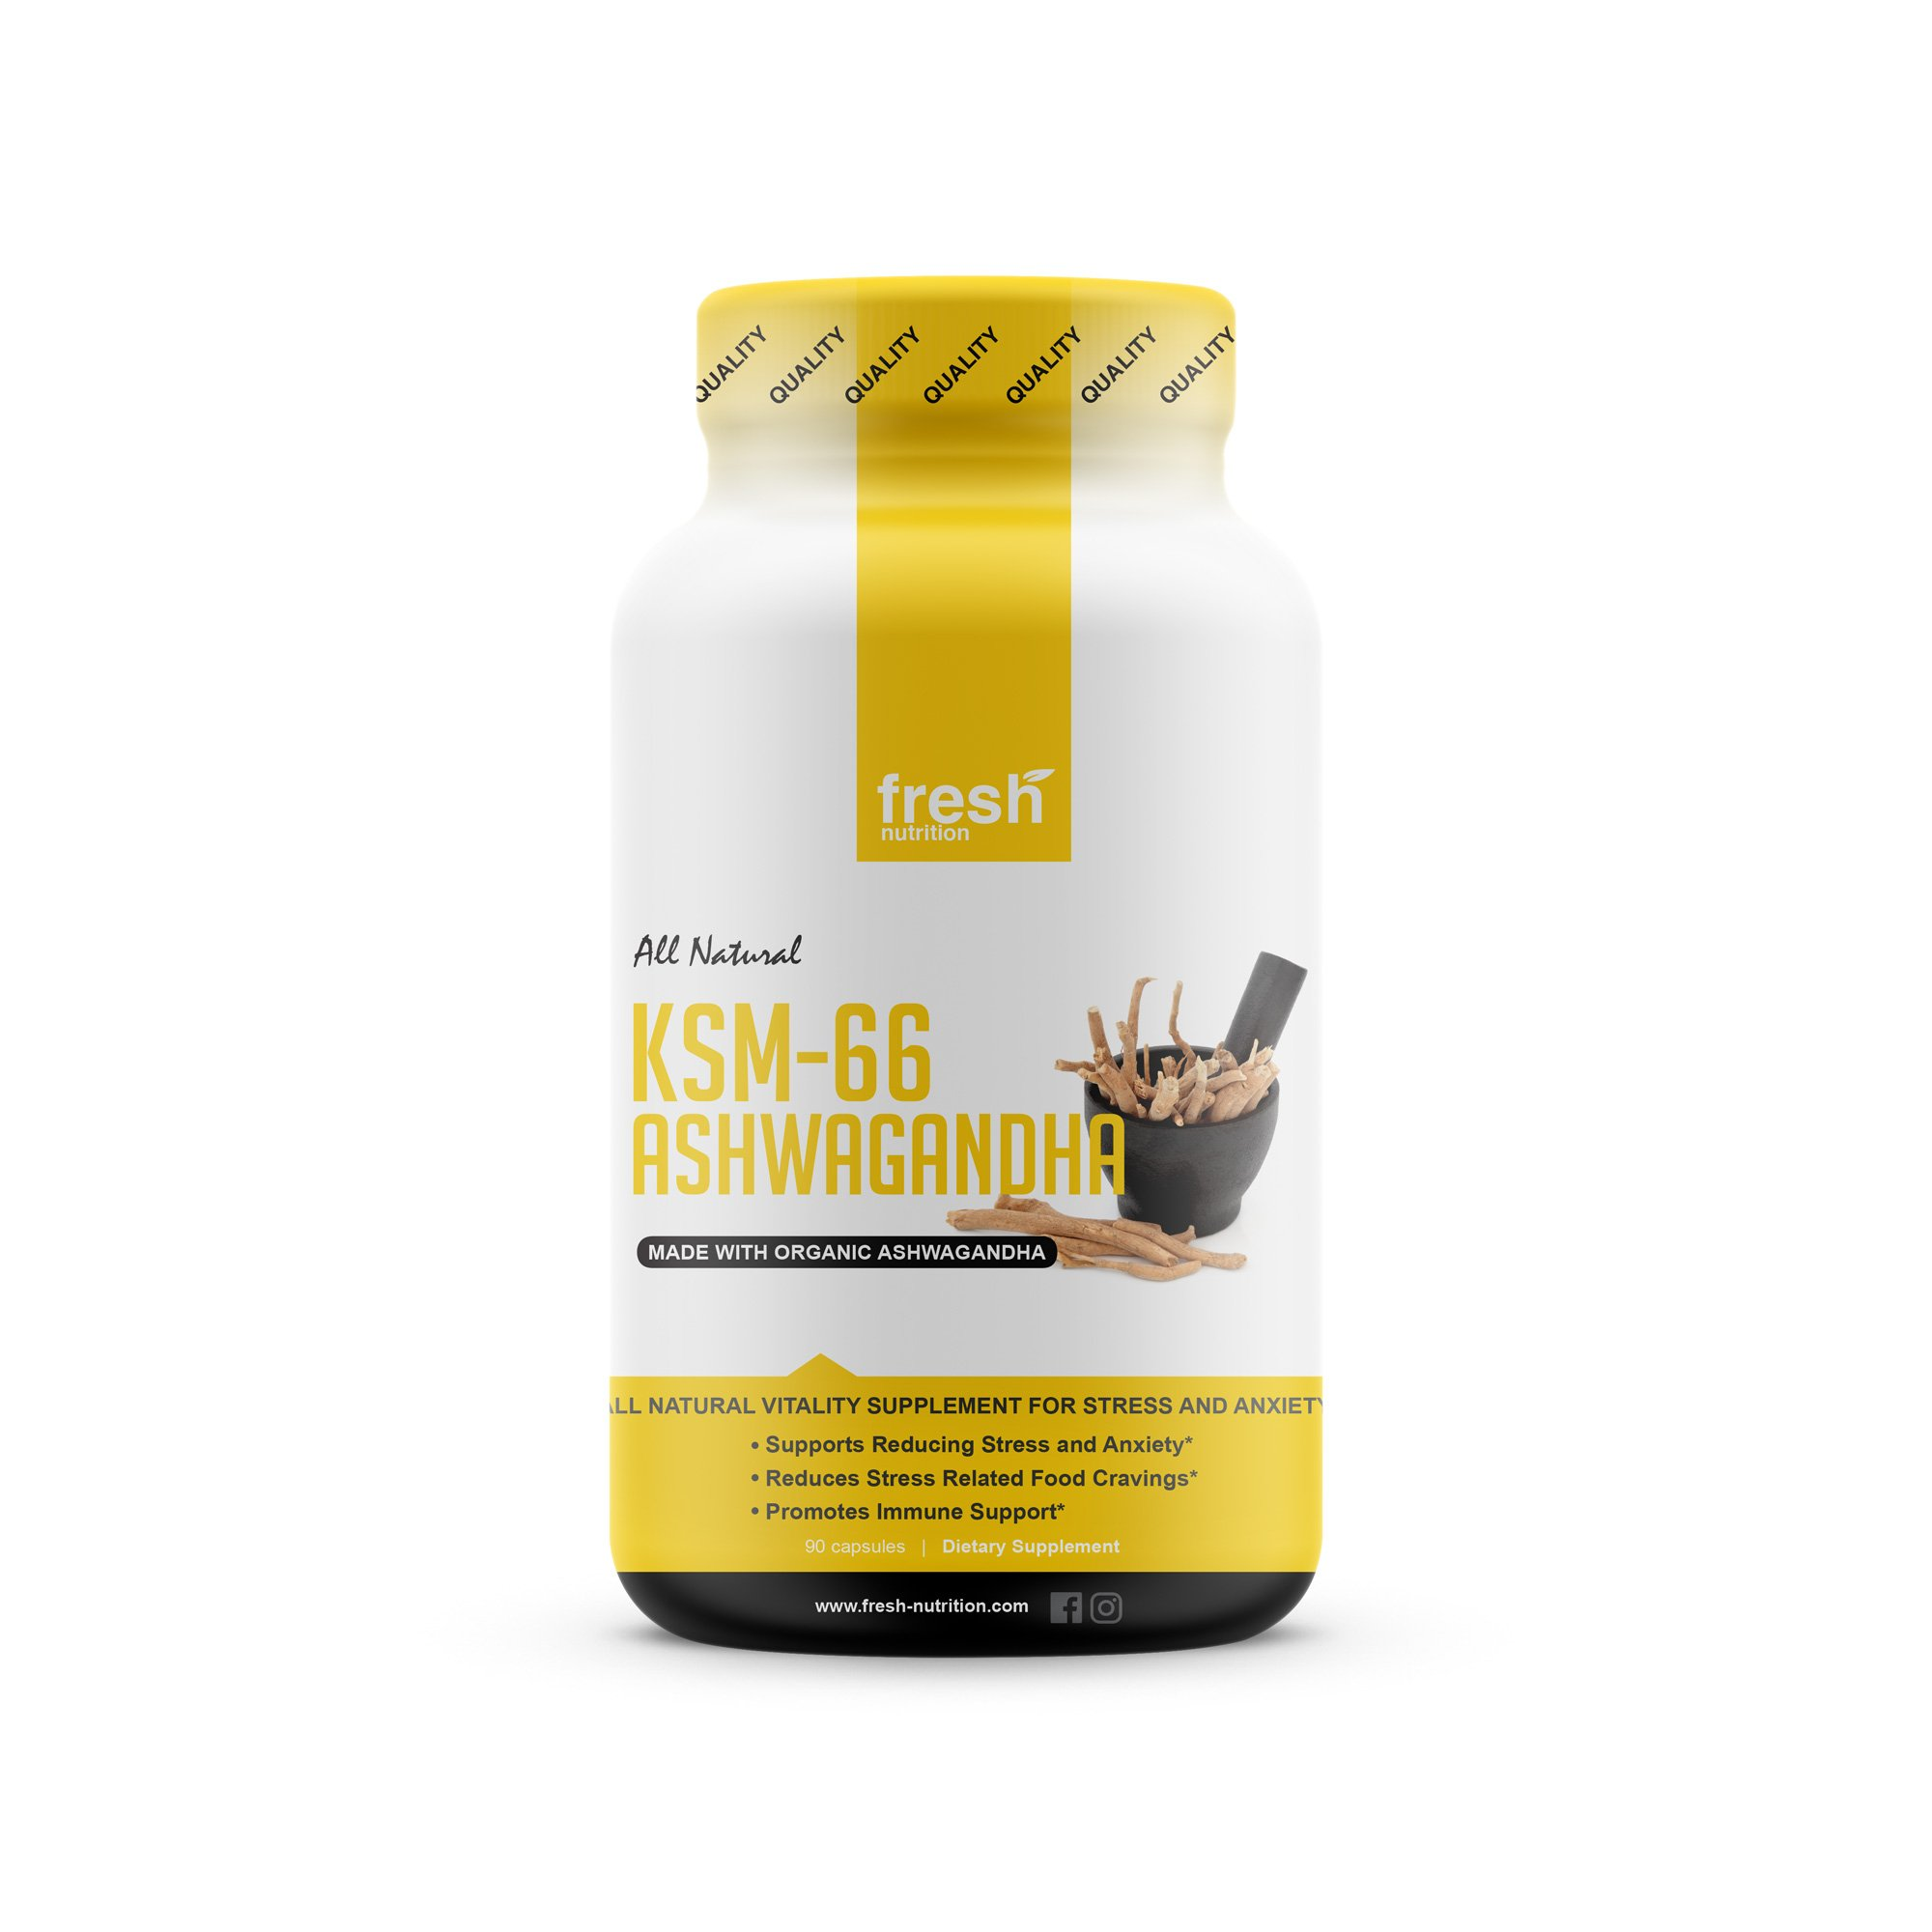 KSM-66 Ashwagandha - Organic Root Extract - 700mg High Potency 5% Withanolides (75mg)- Reduces Stress & Anxiety Relief Like Kava Kava - Energy & Focus - 45 Day Supply - 90 Veggie Capsules